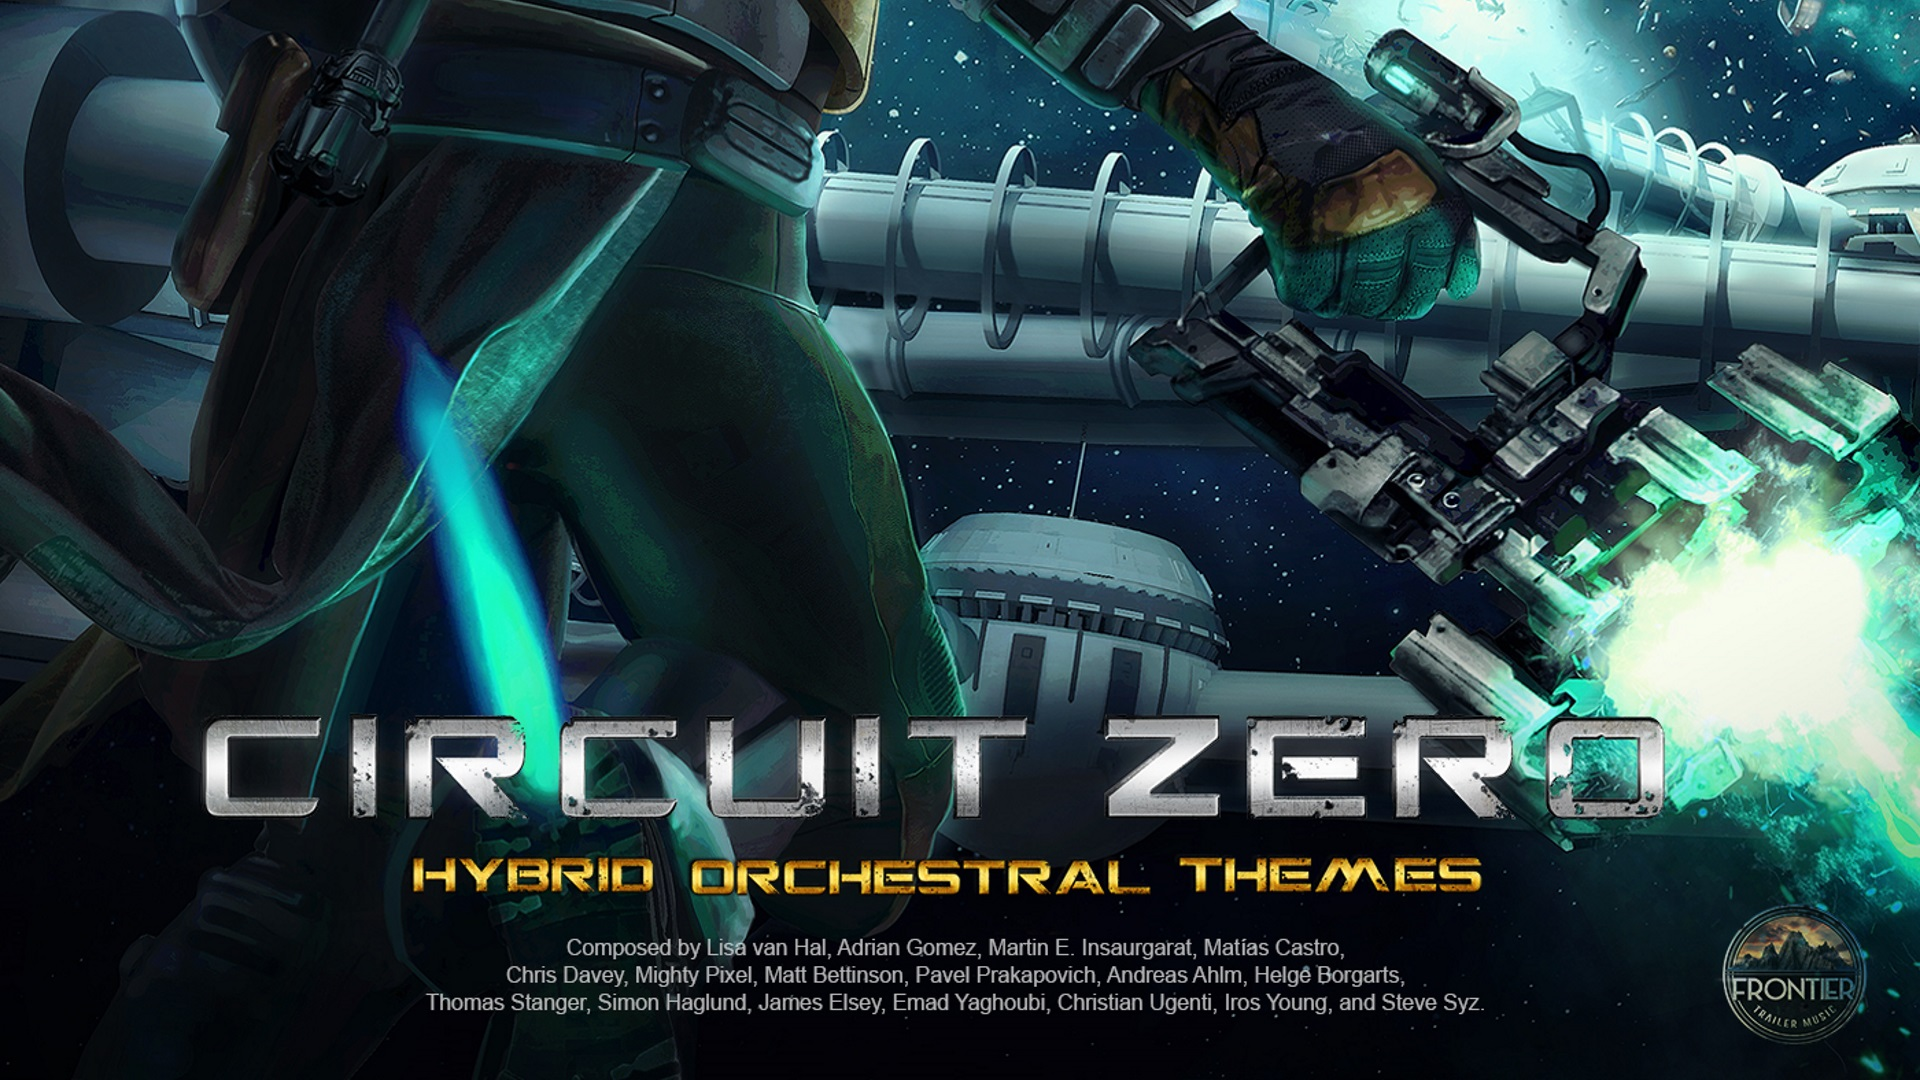 Frontier Trailer Music and 5 Alarm Music - Music for Circuit Zero Album